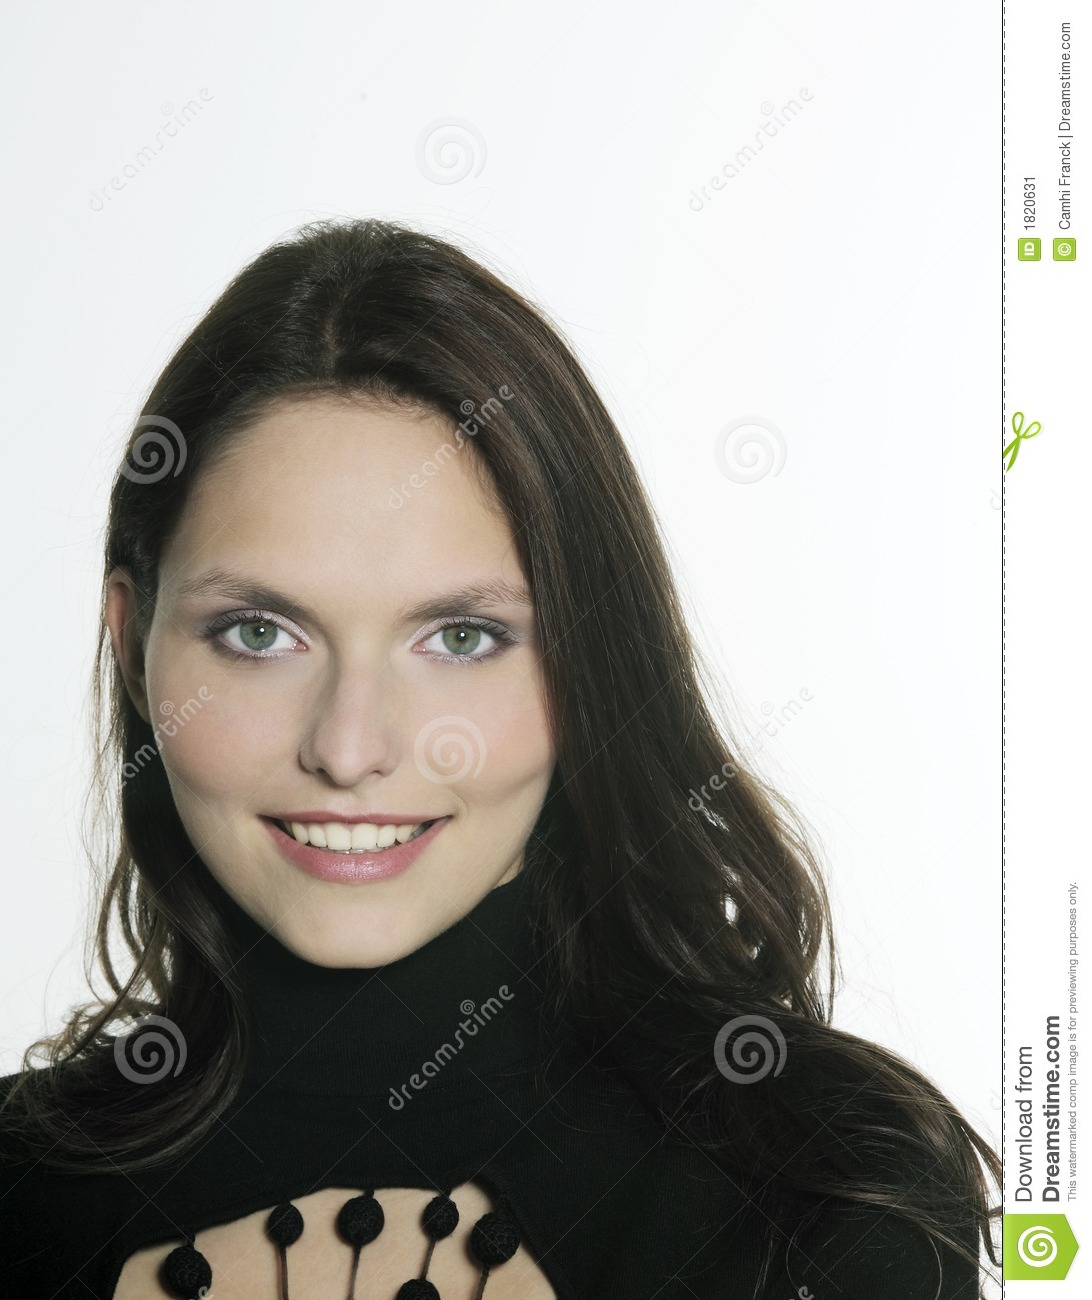 Stock Image Beautiful 25 Years Old Smiling Woman Image